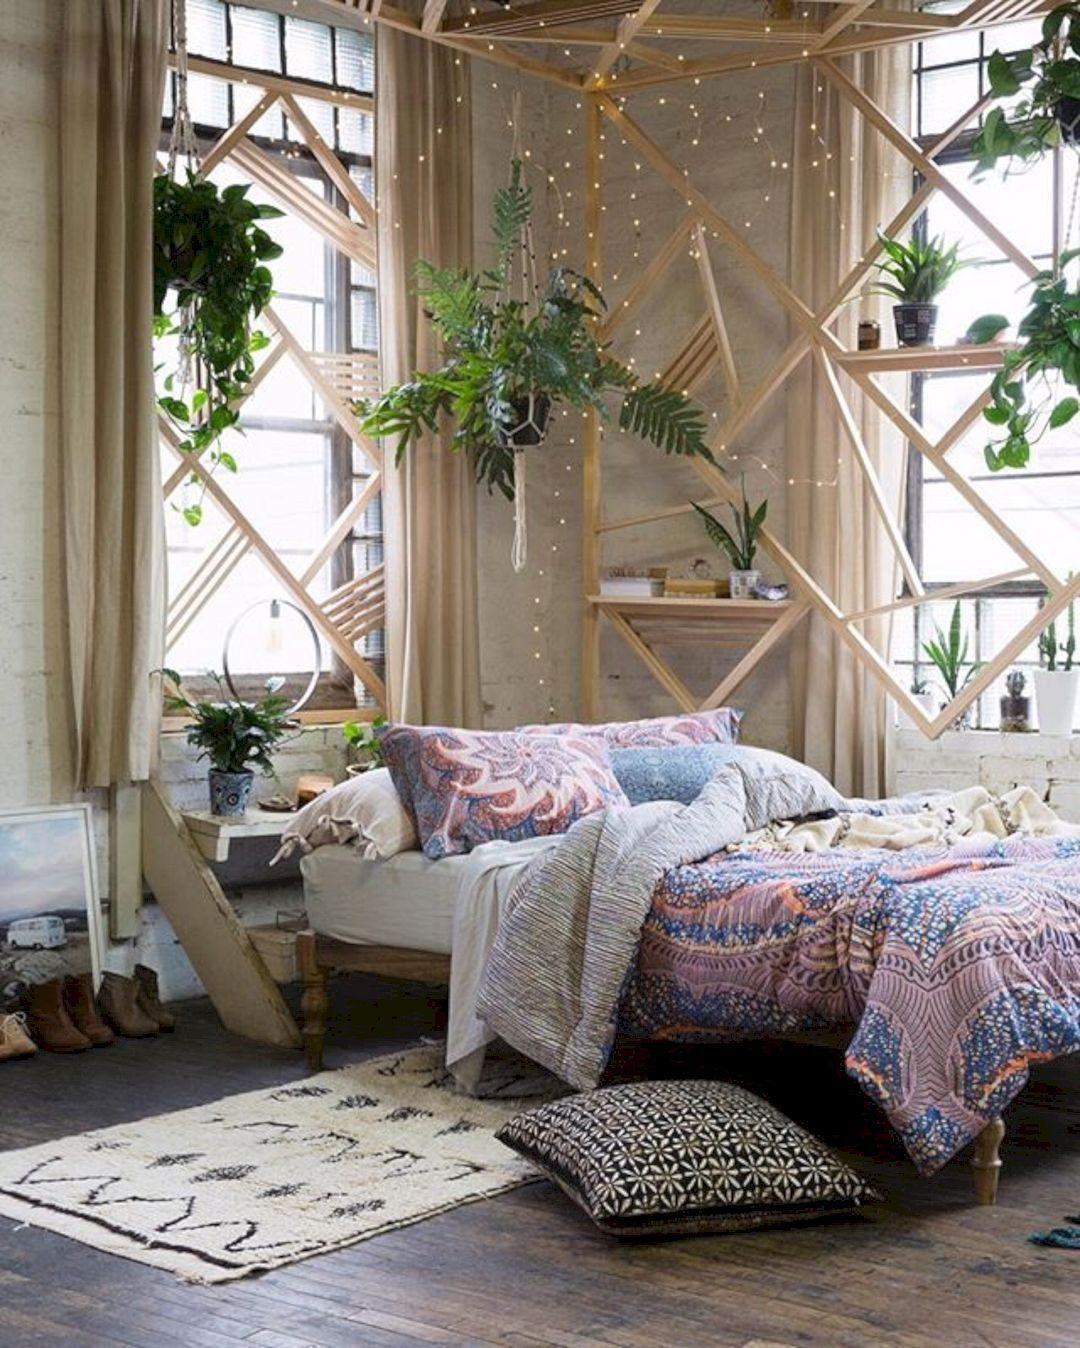 57 Adorable Bohemian Style Bedroom Decor Inspirations | You ve ...